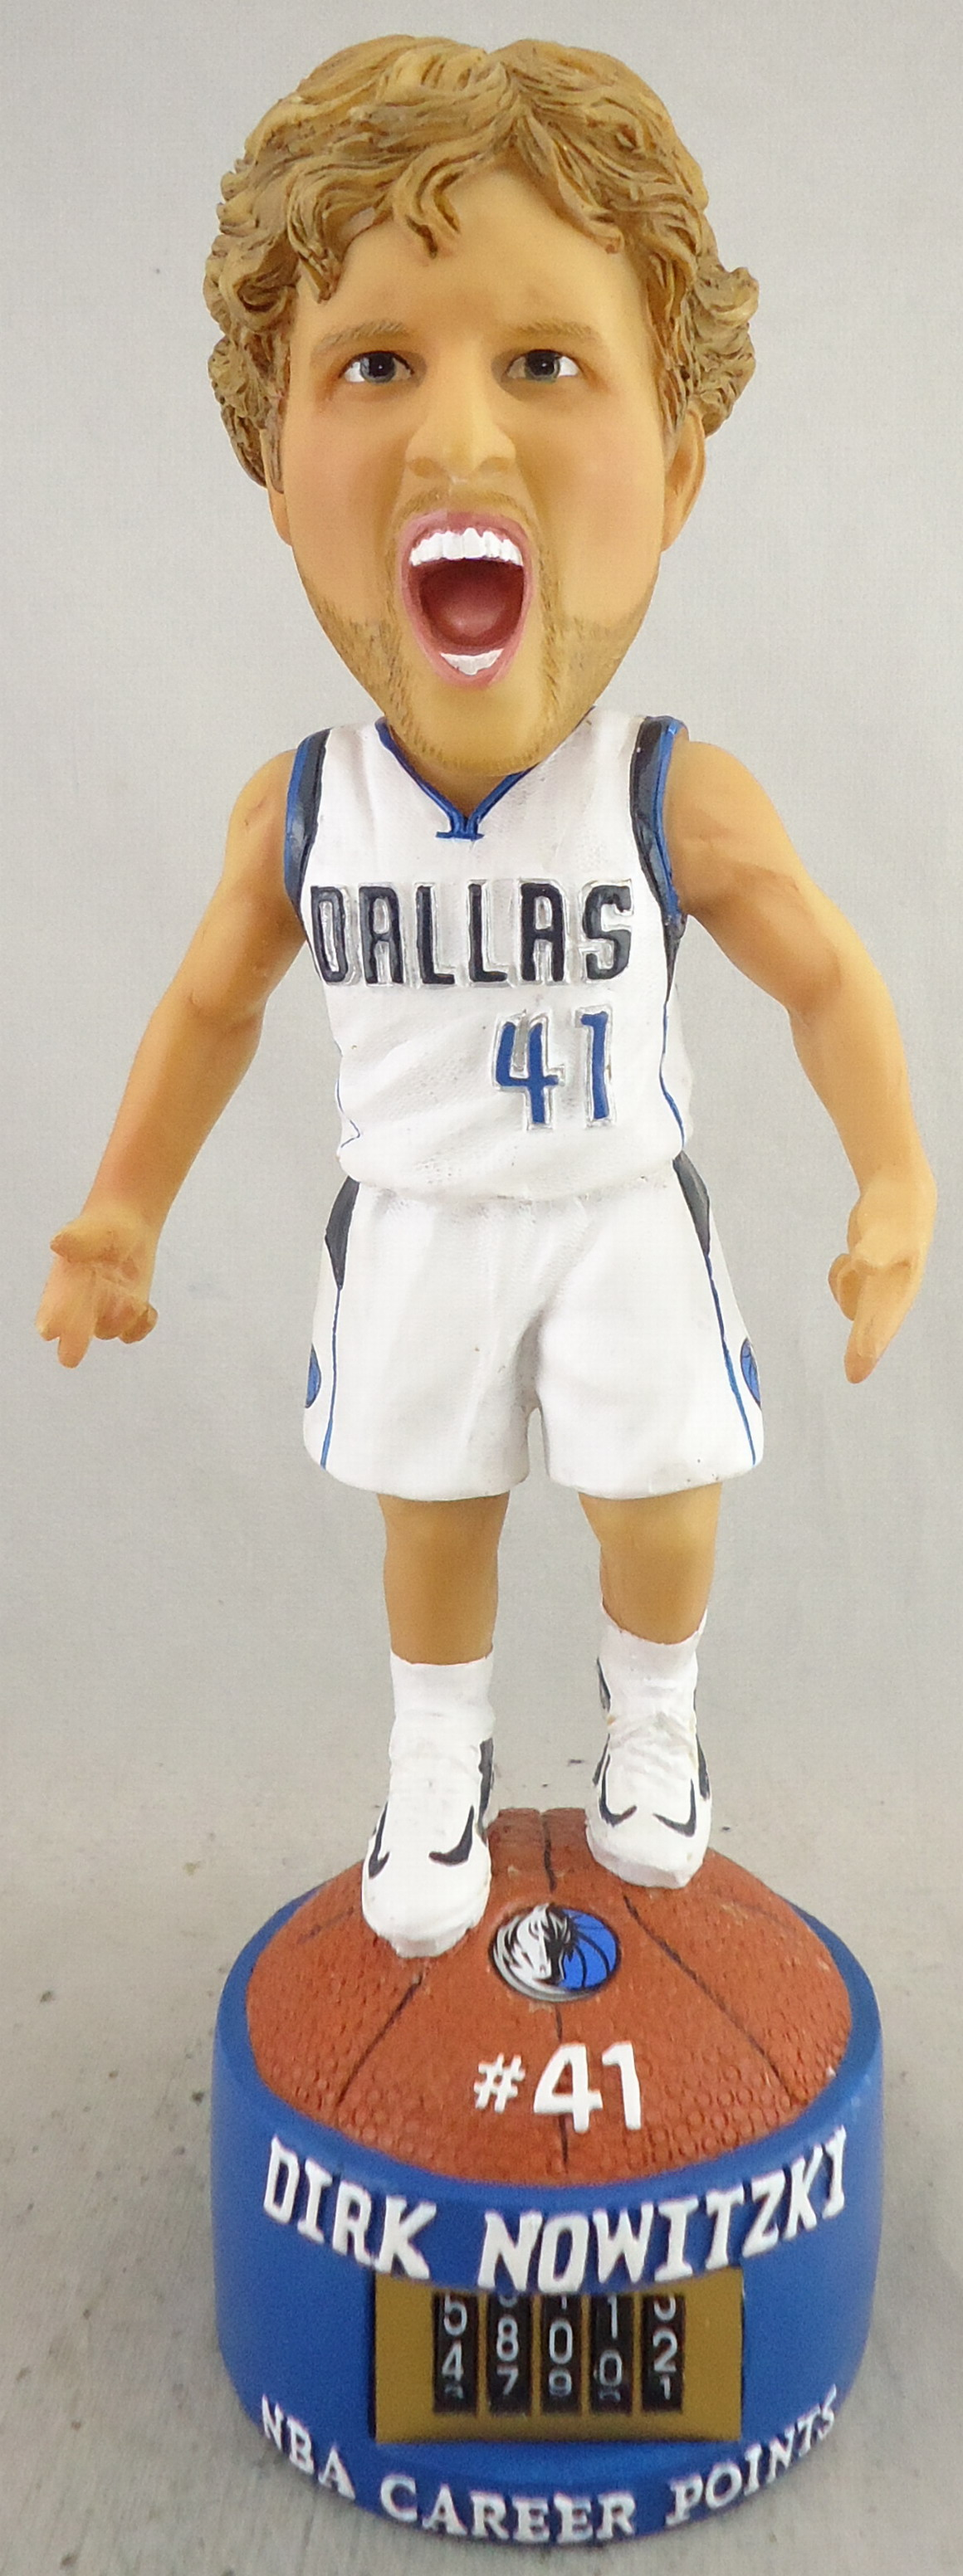 Dallas Mavericks - Dirk Notwitzki 111198, 7in Bobblehead with Counter.jpg